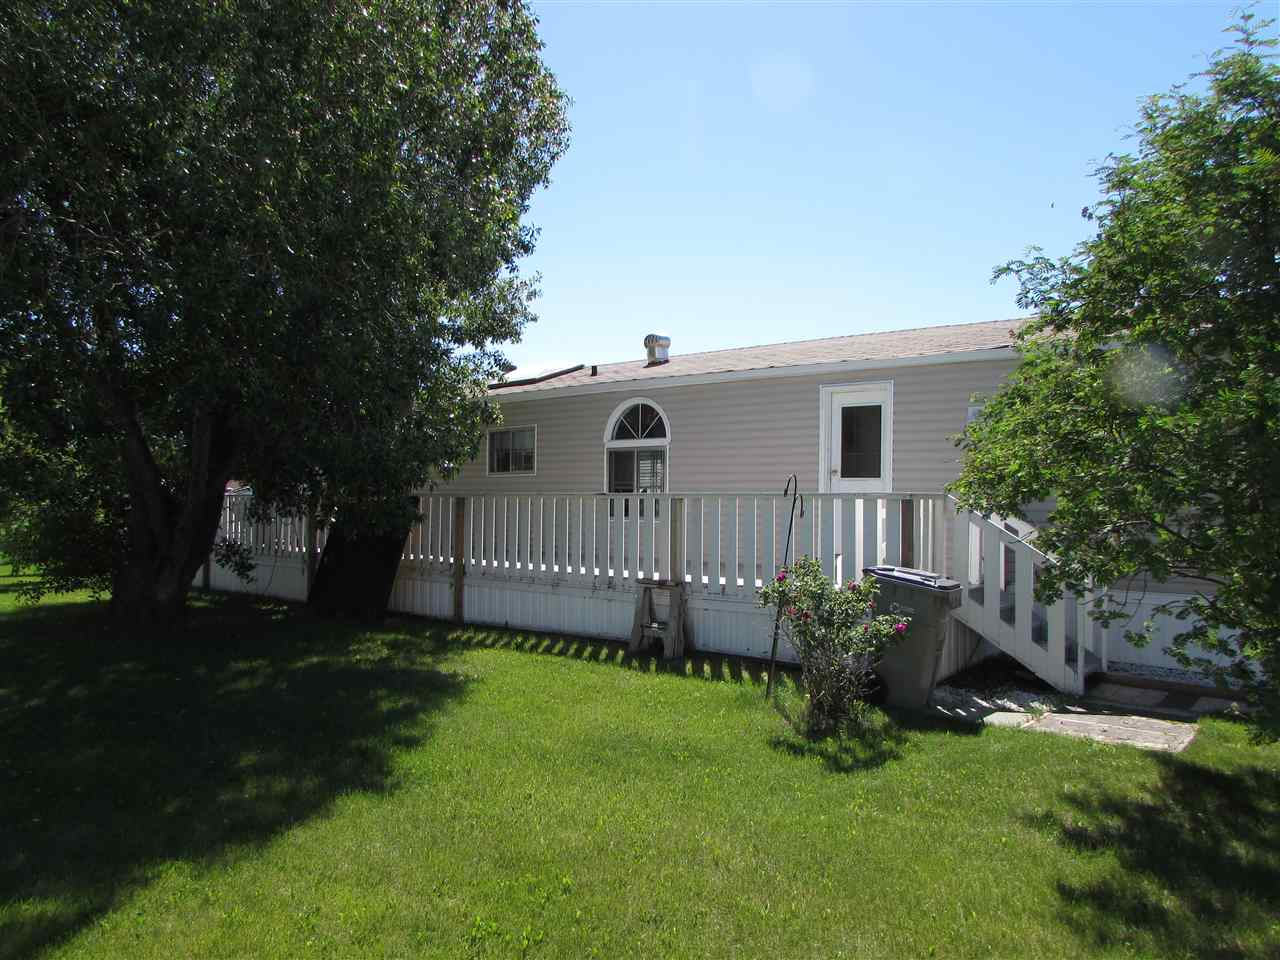 774 53222 272 Range Rd, 3 bed, 2 bath, at $68,900